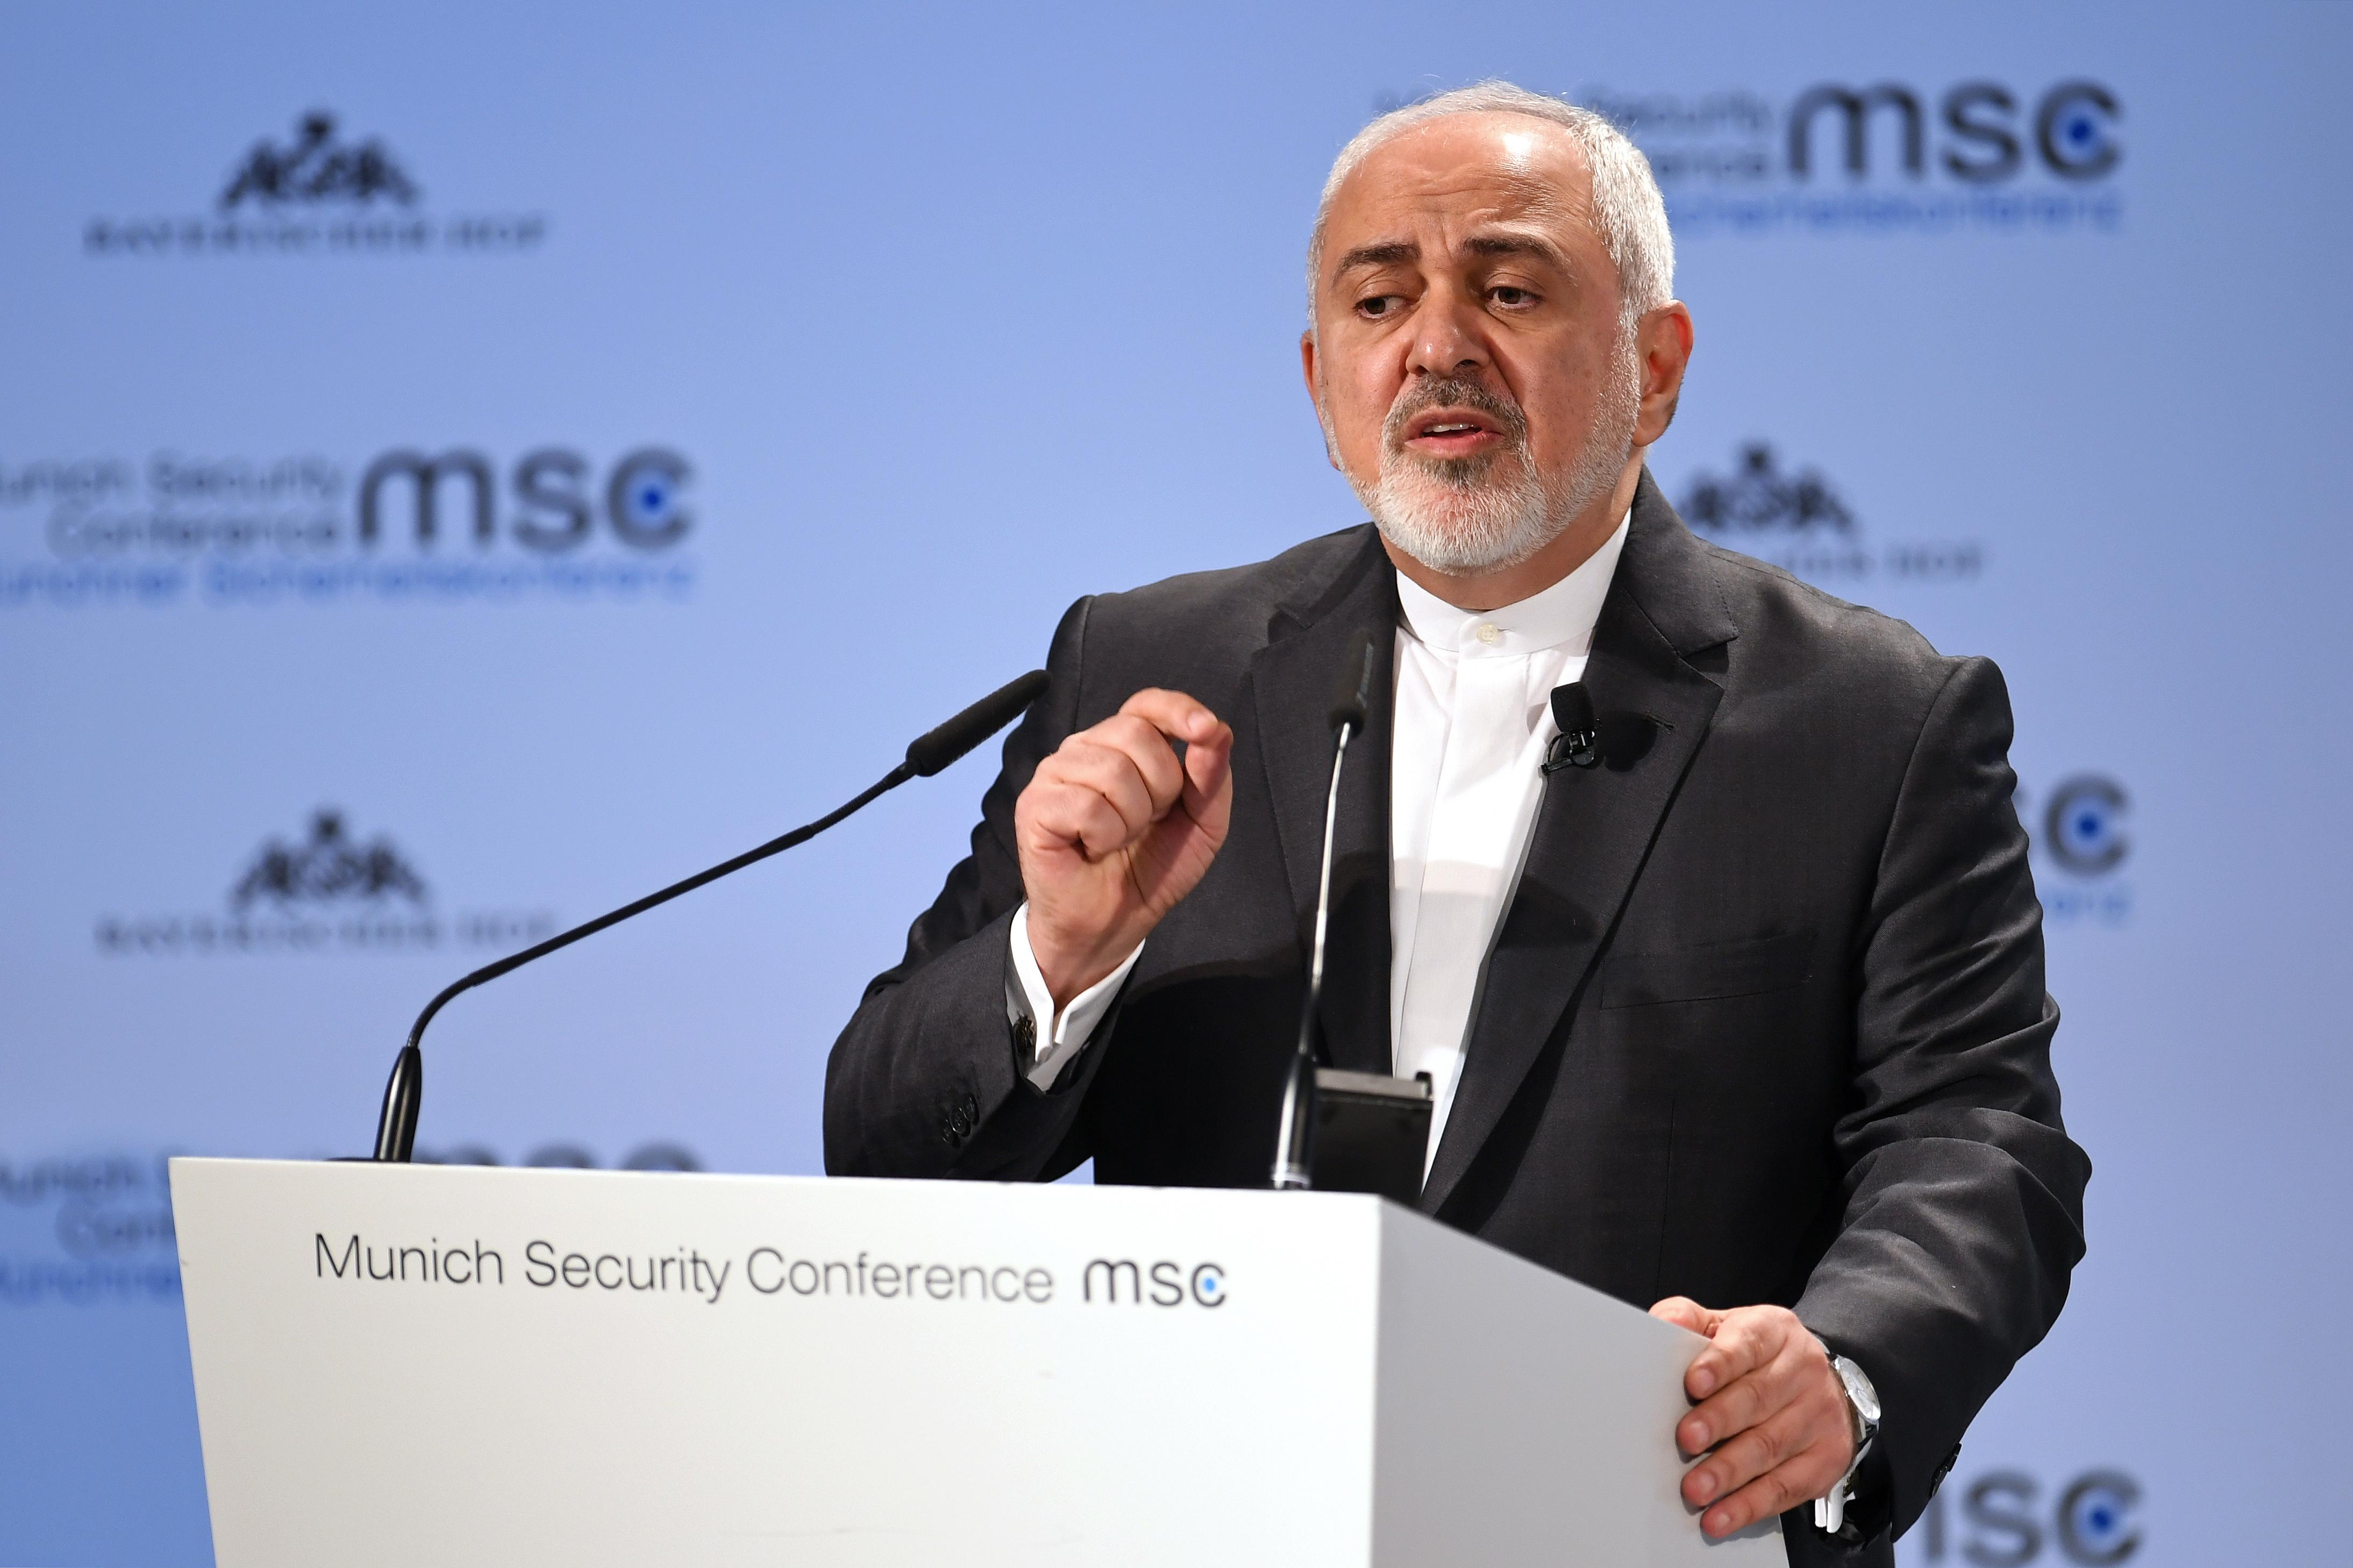 Iran will not rule out possibility of military conflict with Israel